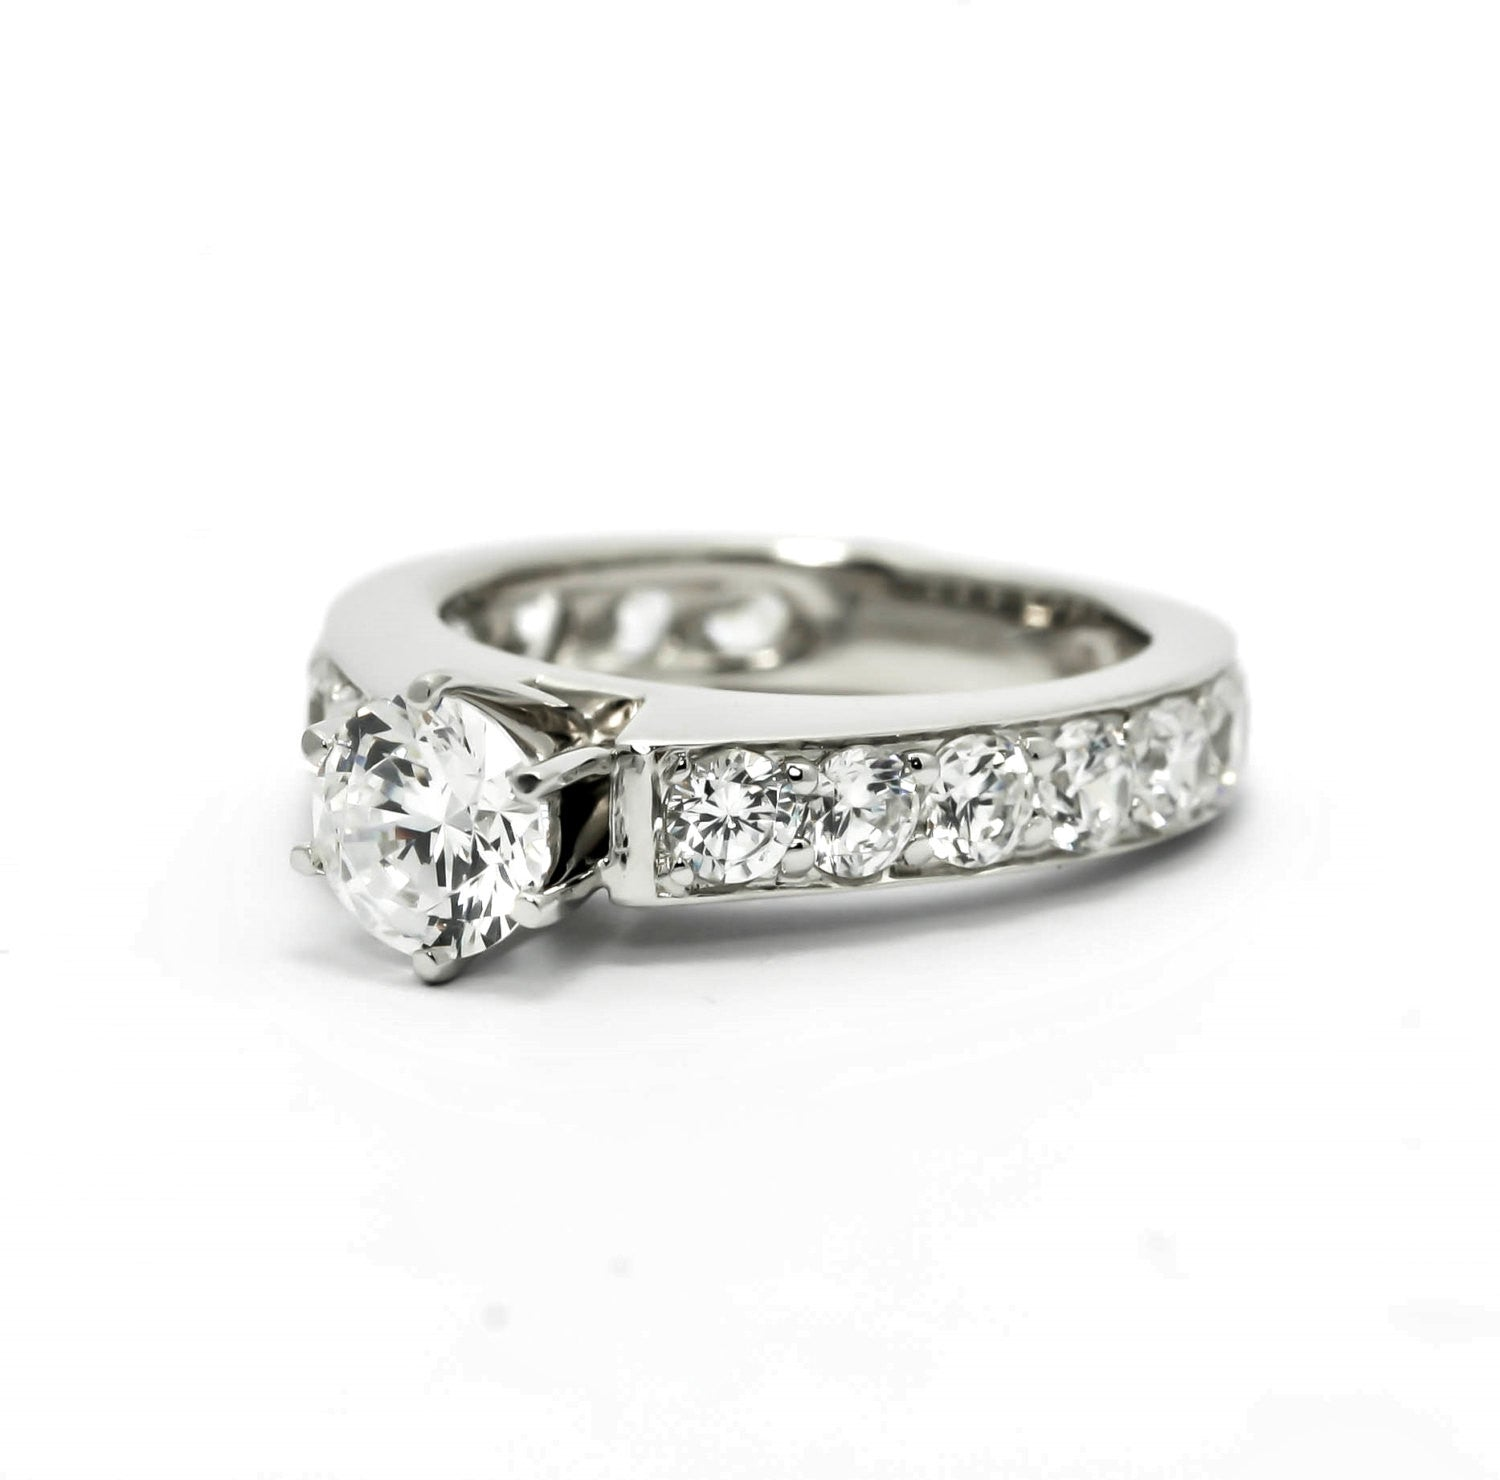 Moissanite Engagement Ring, Unique Solitaire With 1 Carat Forever Brilliant Moissanite & 2.62 Carat Diamonds, Anniversary Ring - FBY11637